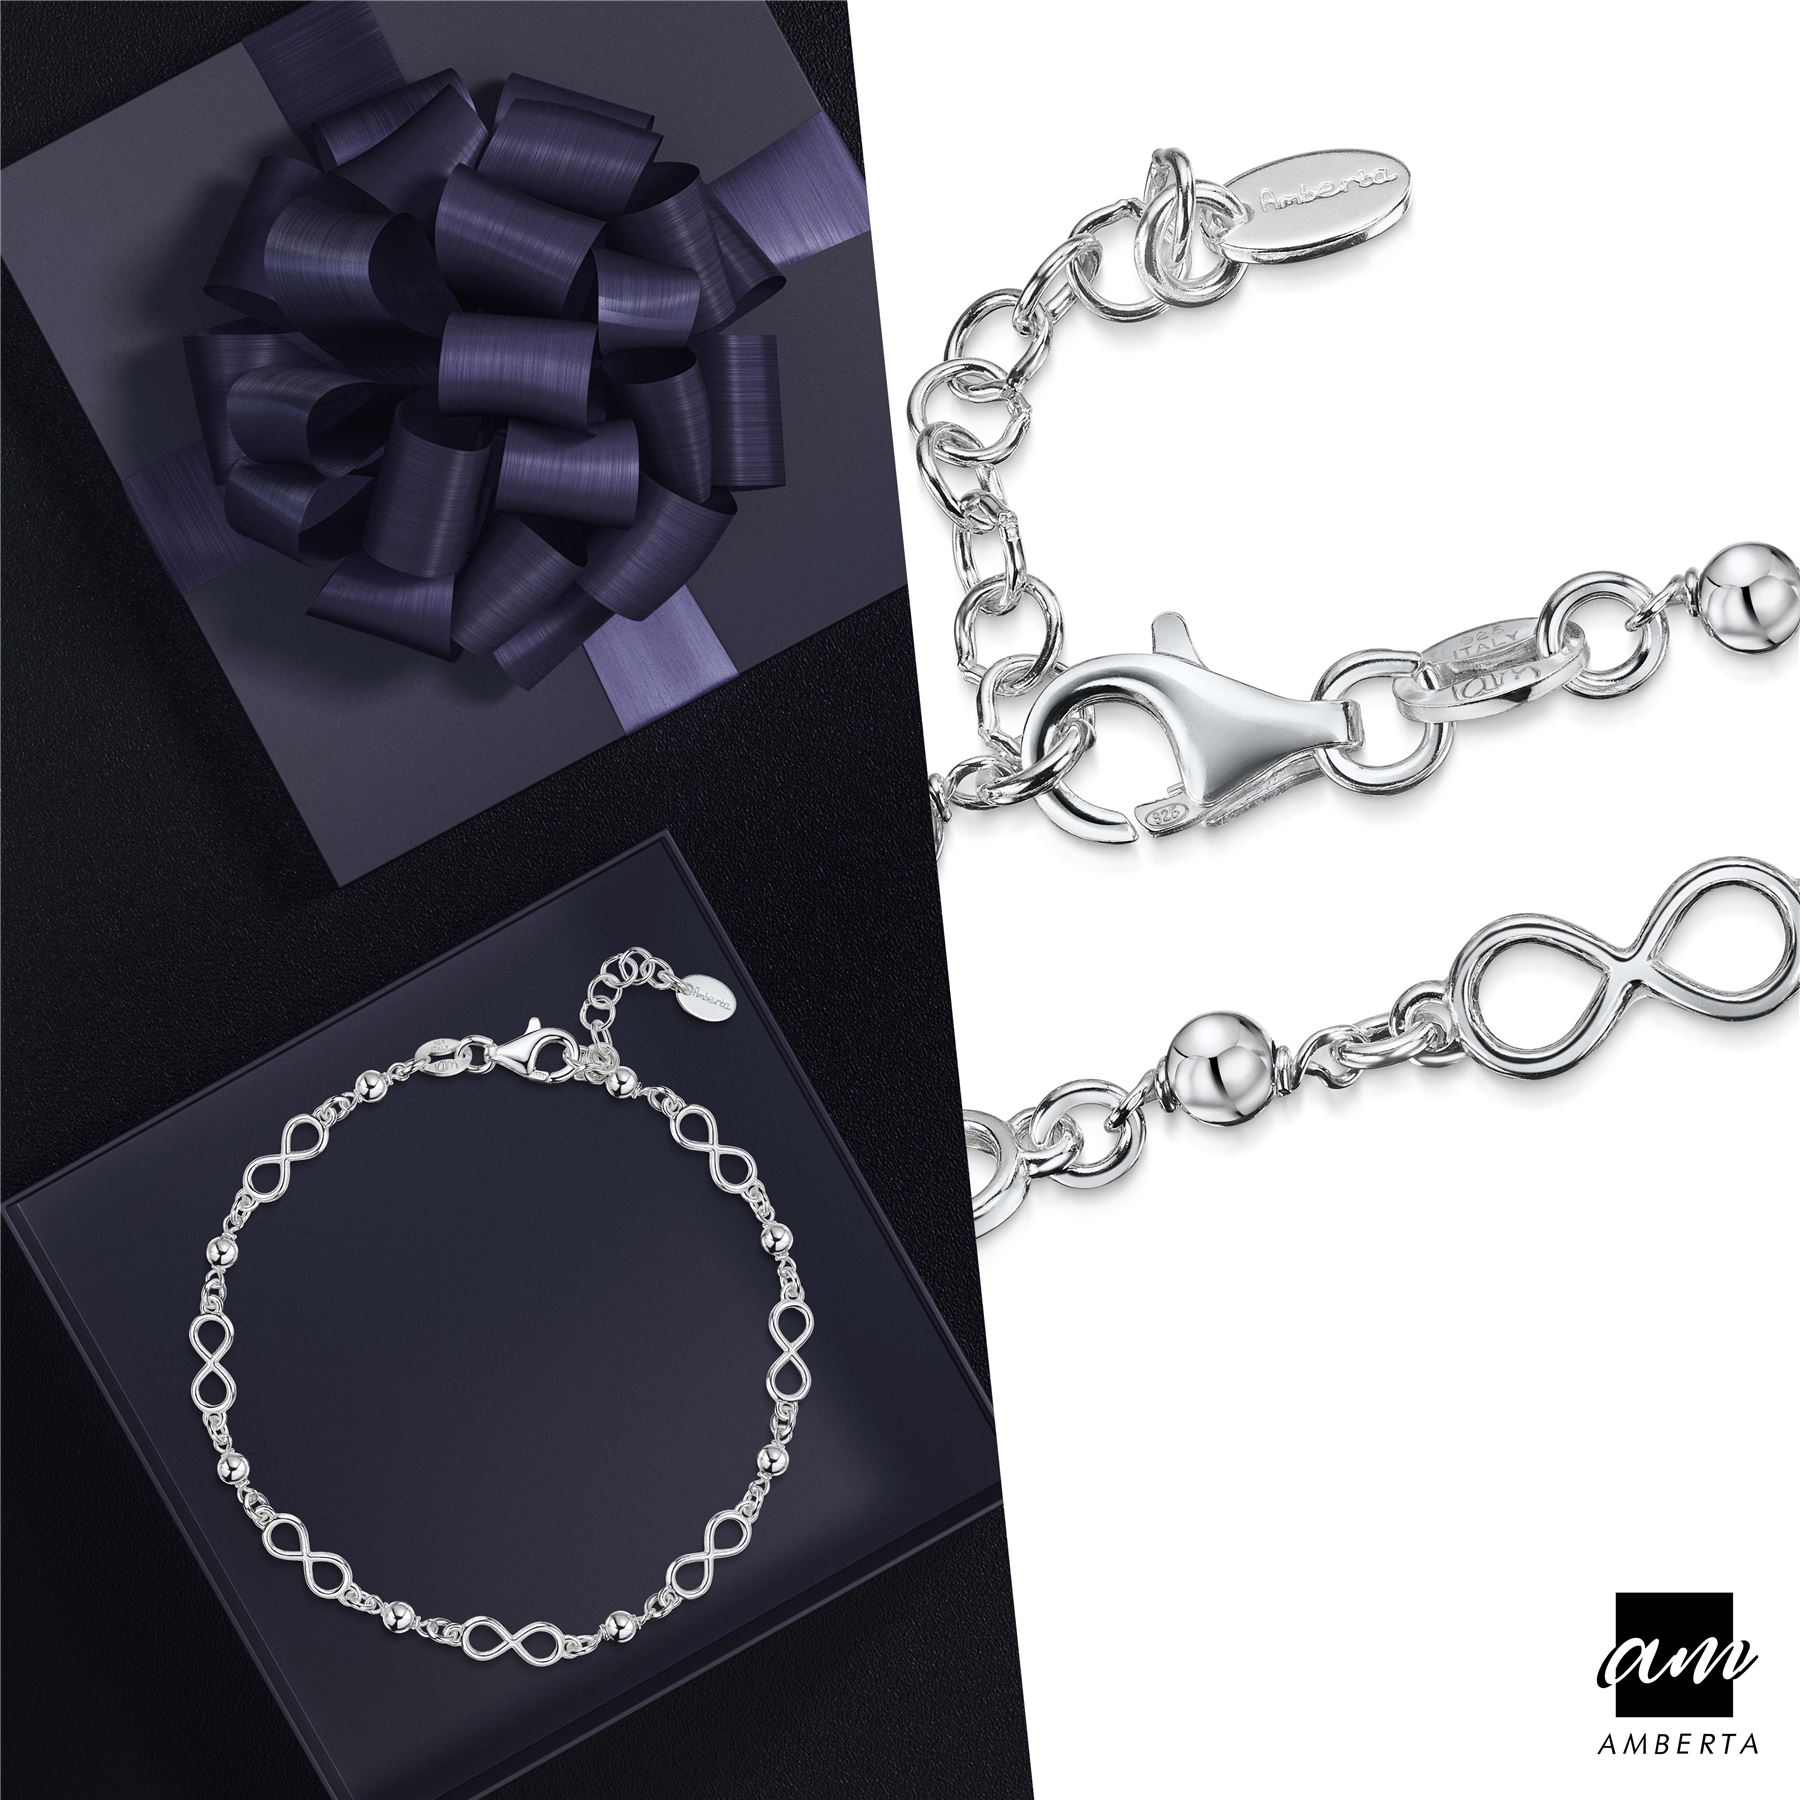 Amberta-925-Sterling-Silver-Adjustable-Rolo-Chain-Bracelet-with-Charms-for-Women miniature 14